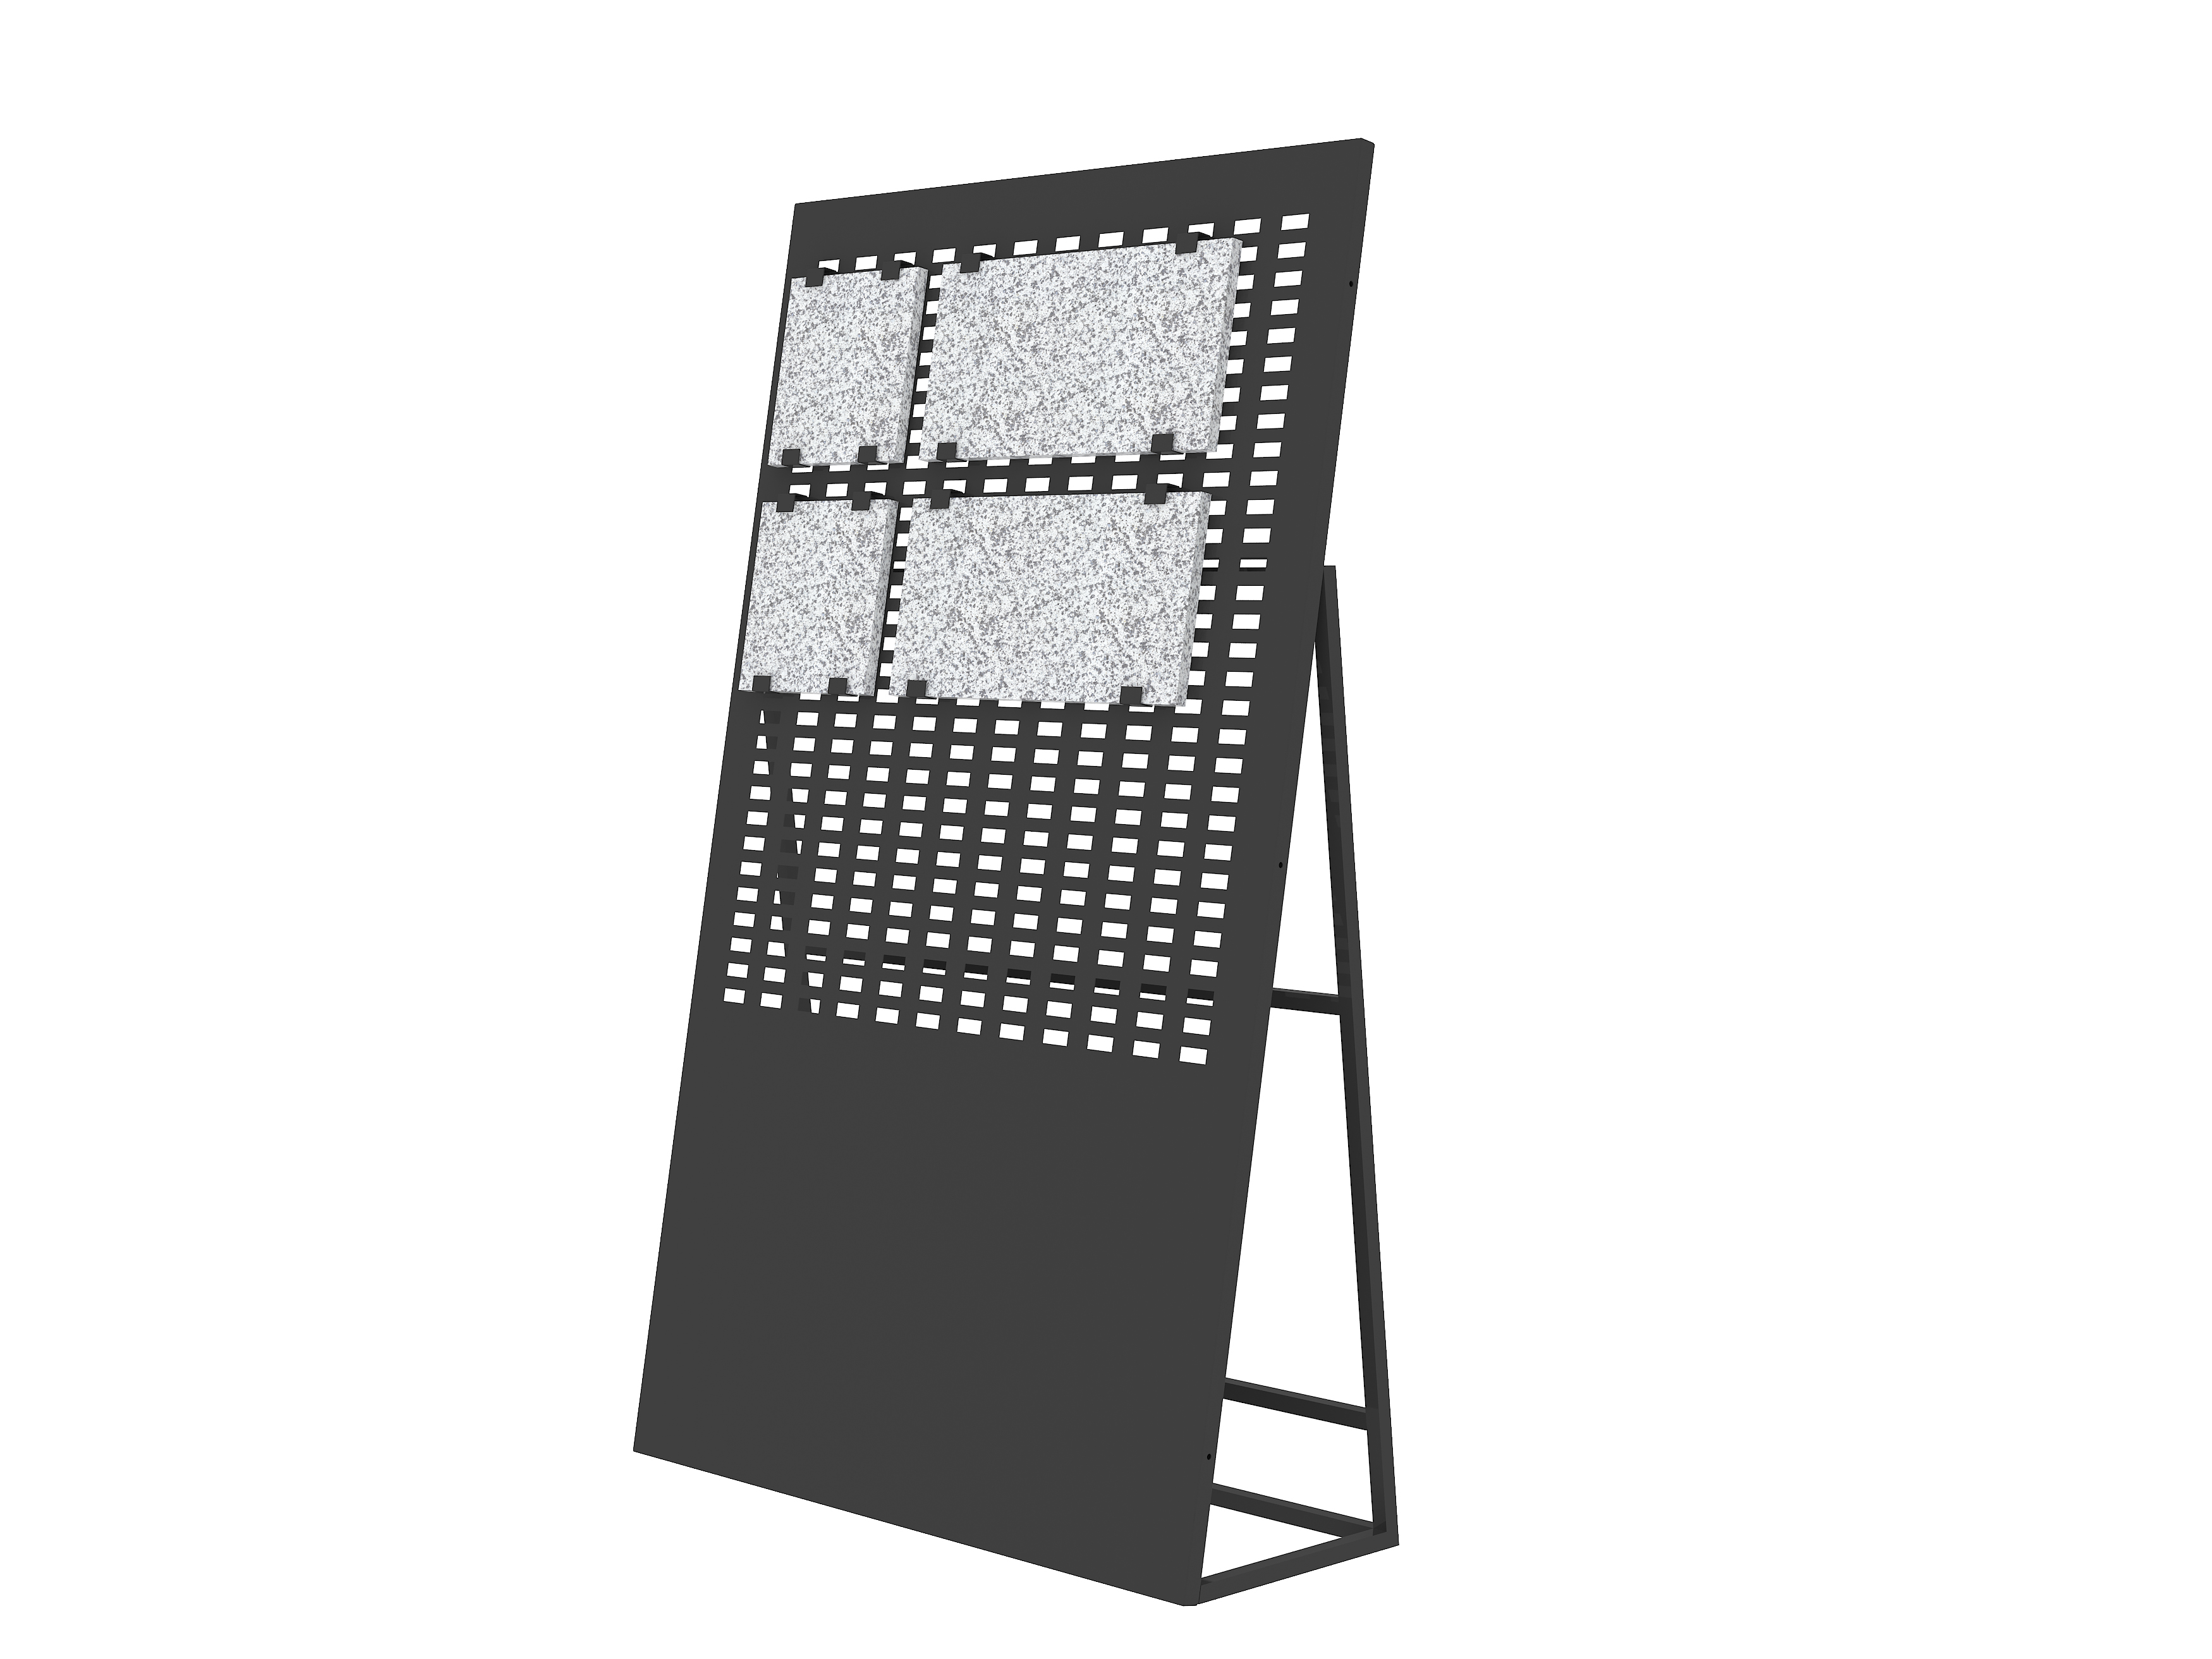 simple-type-stand-granite-sample-display-racks-ST-11-2